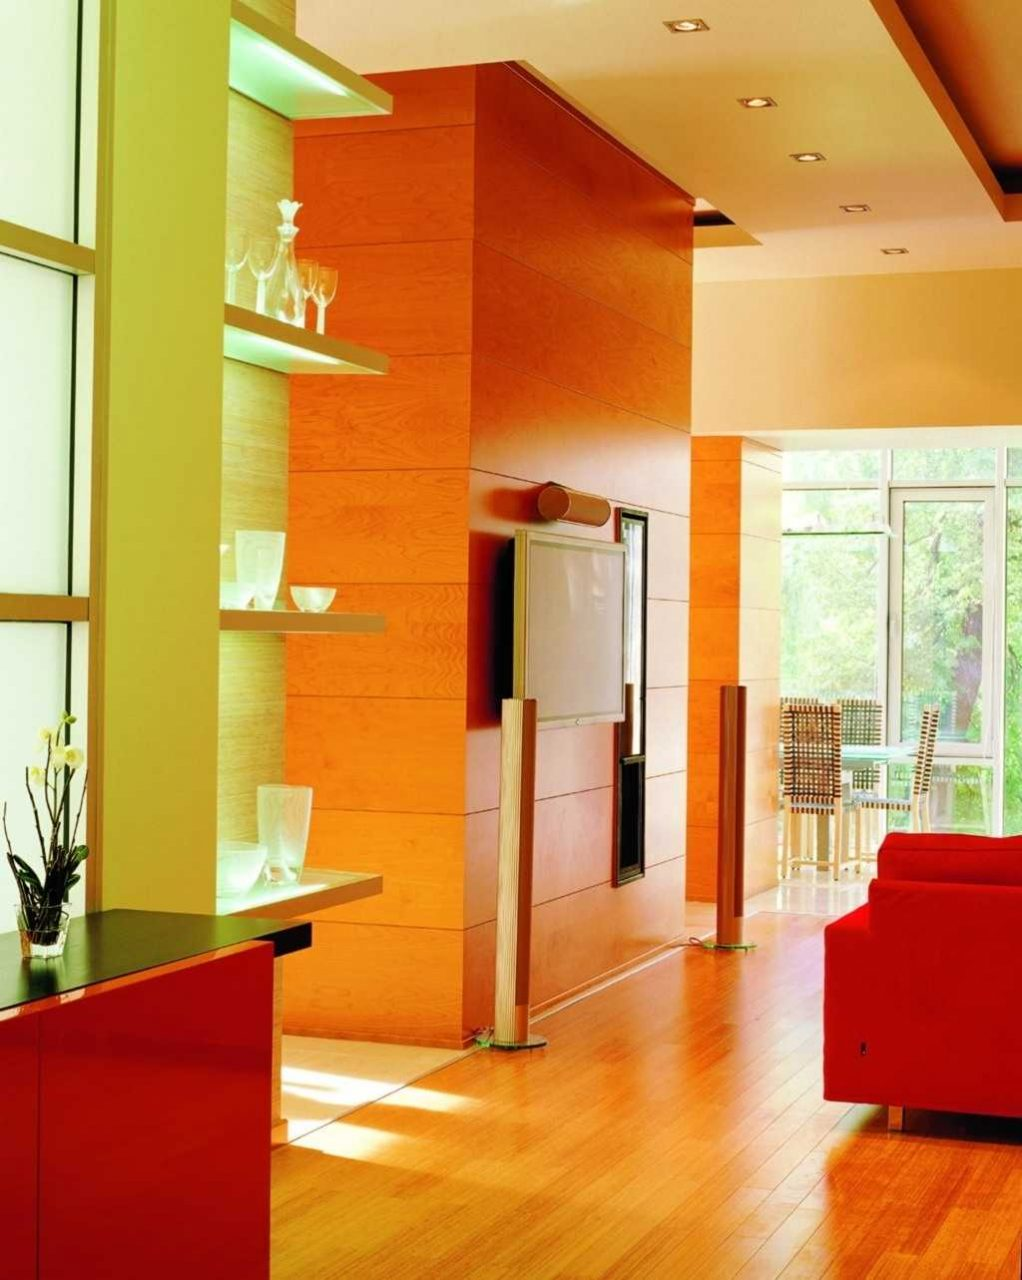 Living Room Orange Rooms Walls Design Ideas Burnt Green Pink Wall